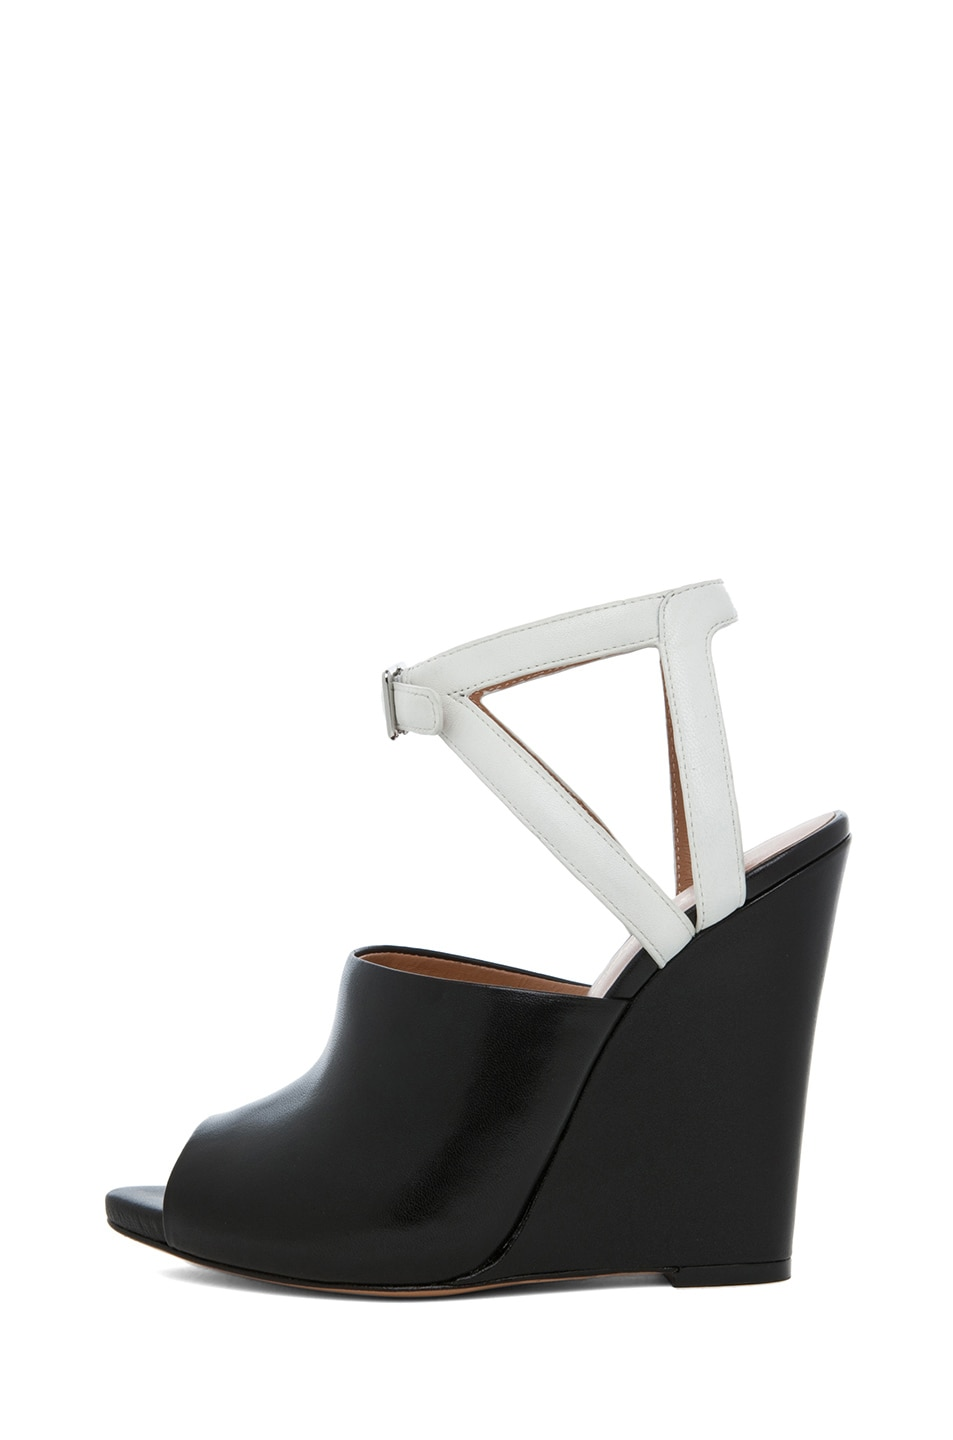 Image 1 of 3.1 phillip lim Juliette Leather Wedge in Black & White